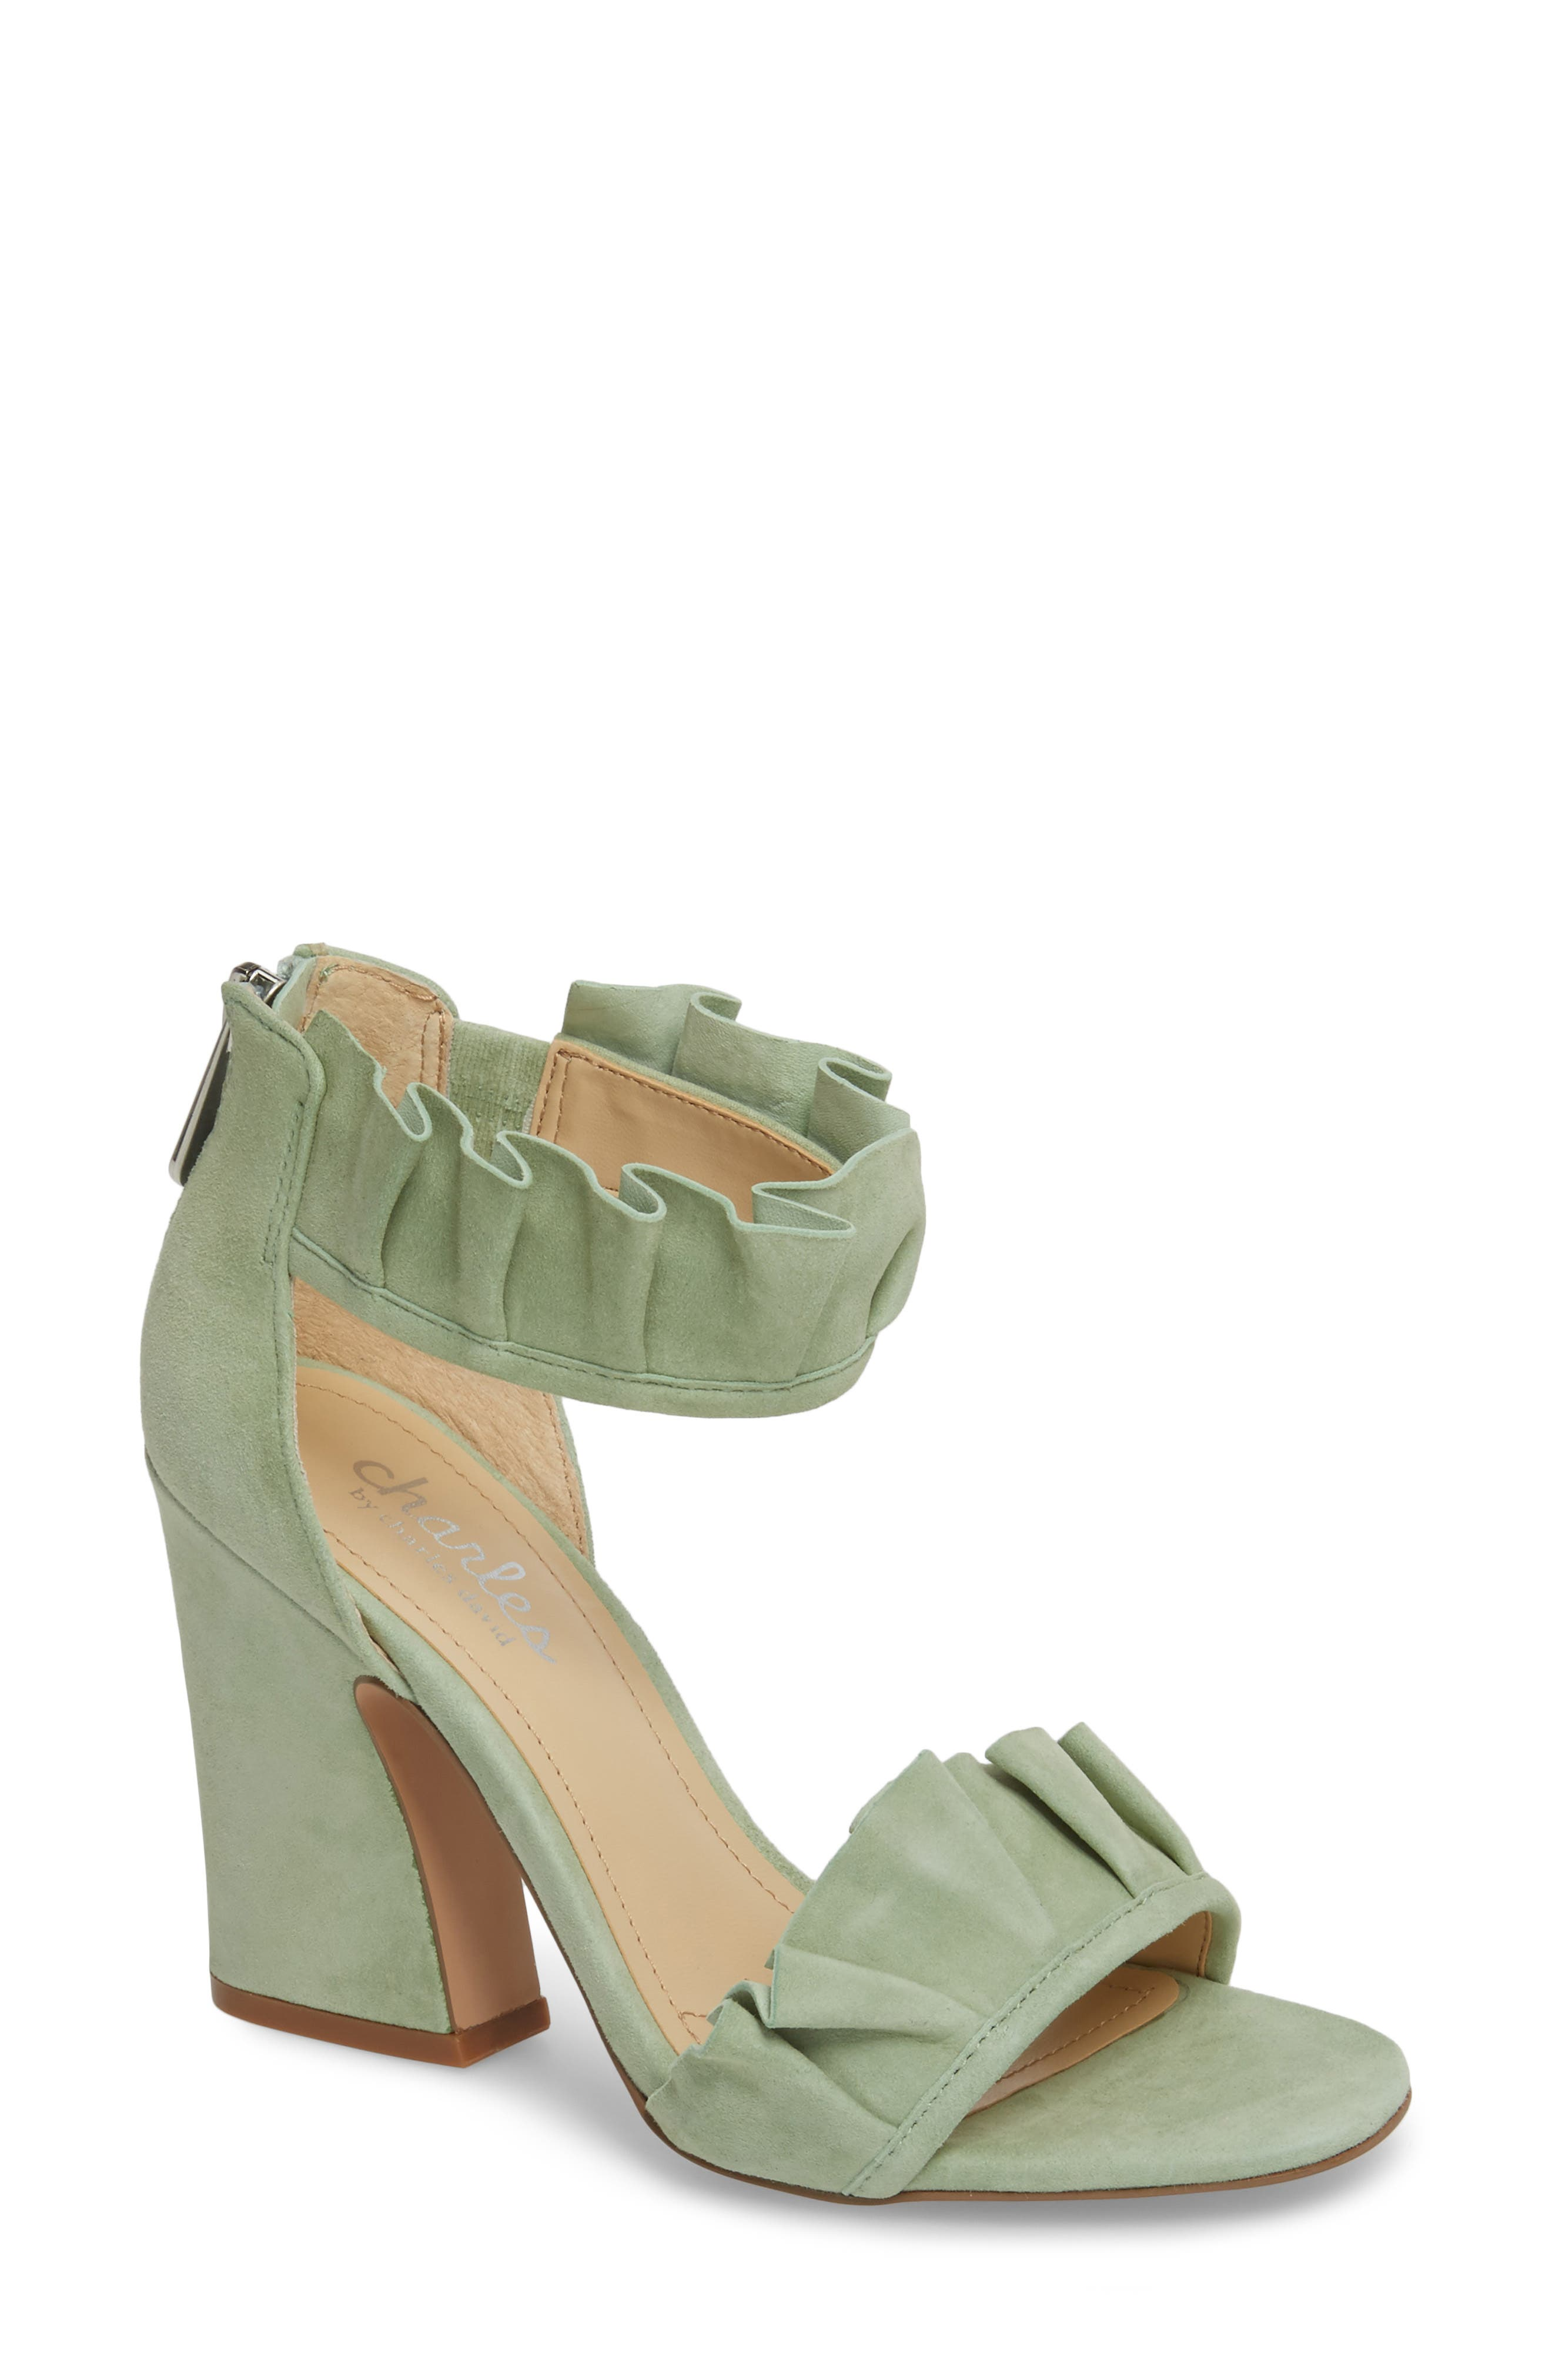 Haley Ruffle Sandal,                         Main,                         color, MINT SUEDE